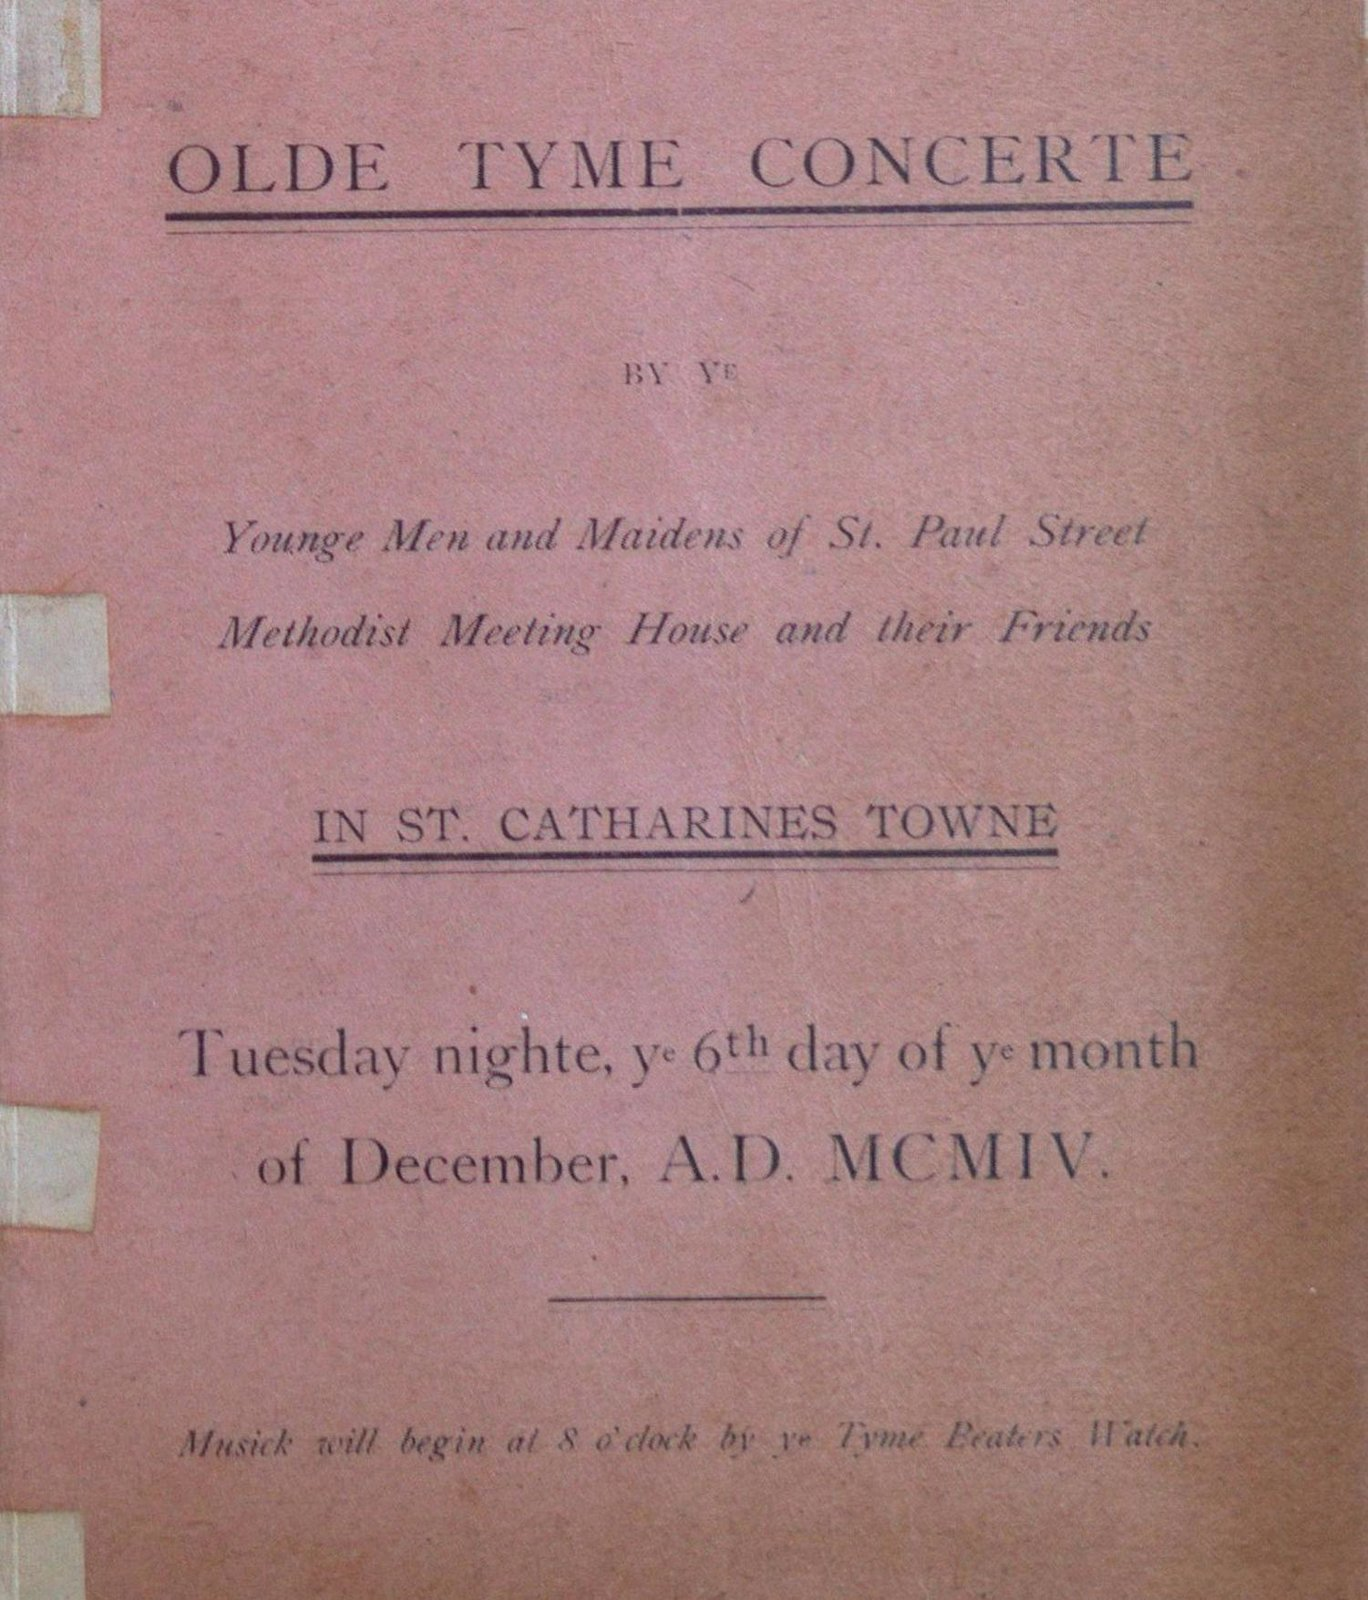 Teresa Vanderburgh's Musical Scrapbook #2 - Program for an Olde Tyme Concerte